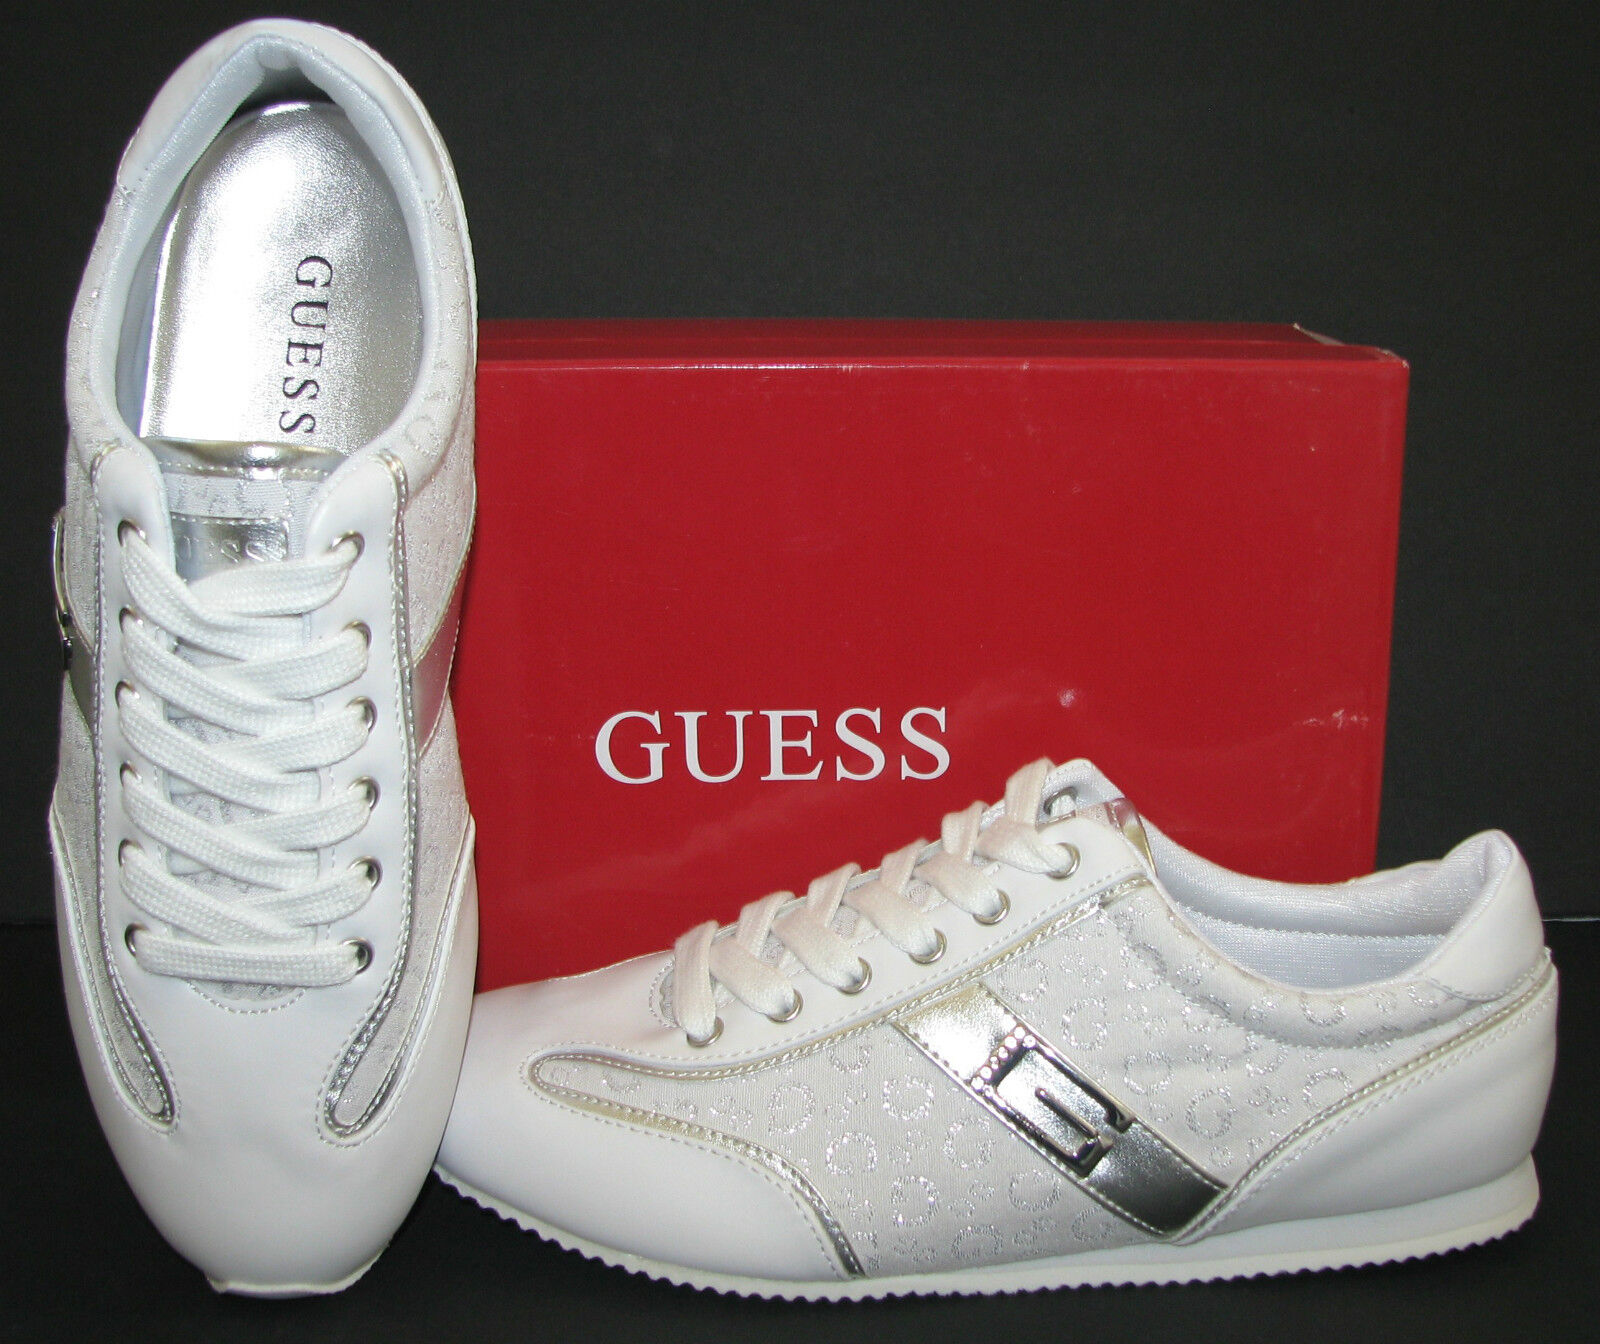 NEW-GUESS DANICE FABRIC/LEATHERETTE+SILVER+CRYSTALS WEISS FABRIC/LEATHERETTE+SILVER+CRYSTALS DANICE SPORT Schuhe SIZES:6-9 864066